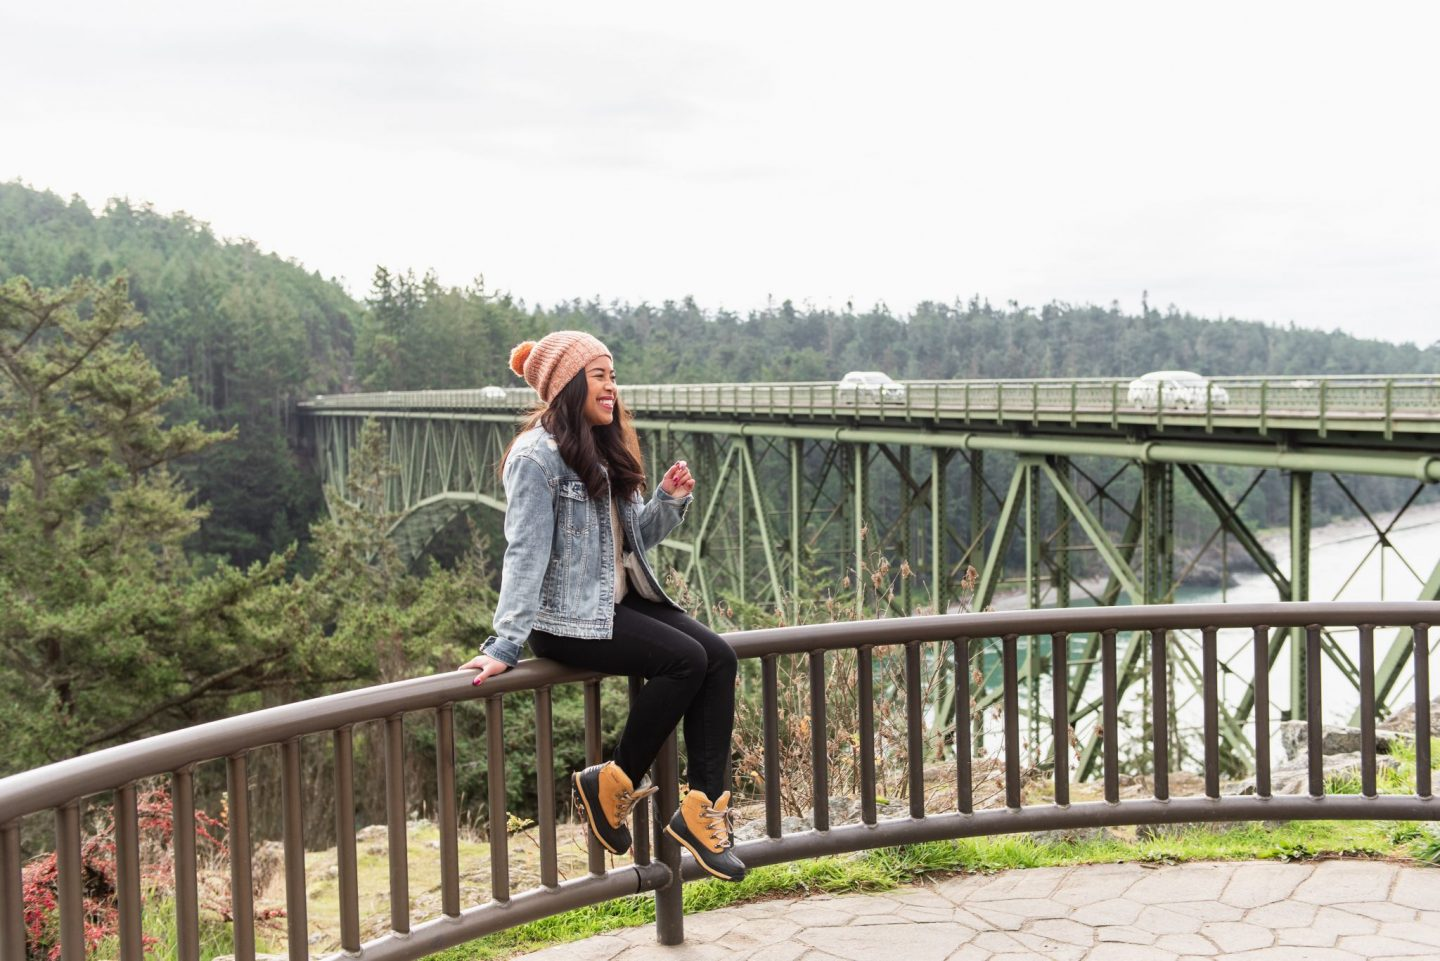 Things to do on Whidbey Island – Whidbey Island Weekend – how to spend a weekend on Whidbey Island – best things to do on Whidbey island – San Juan Islands – Puget Sound – Seattle to Whidbey Island